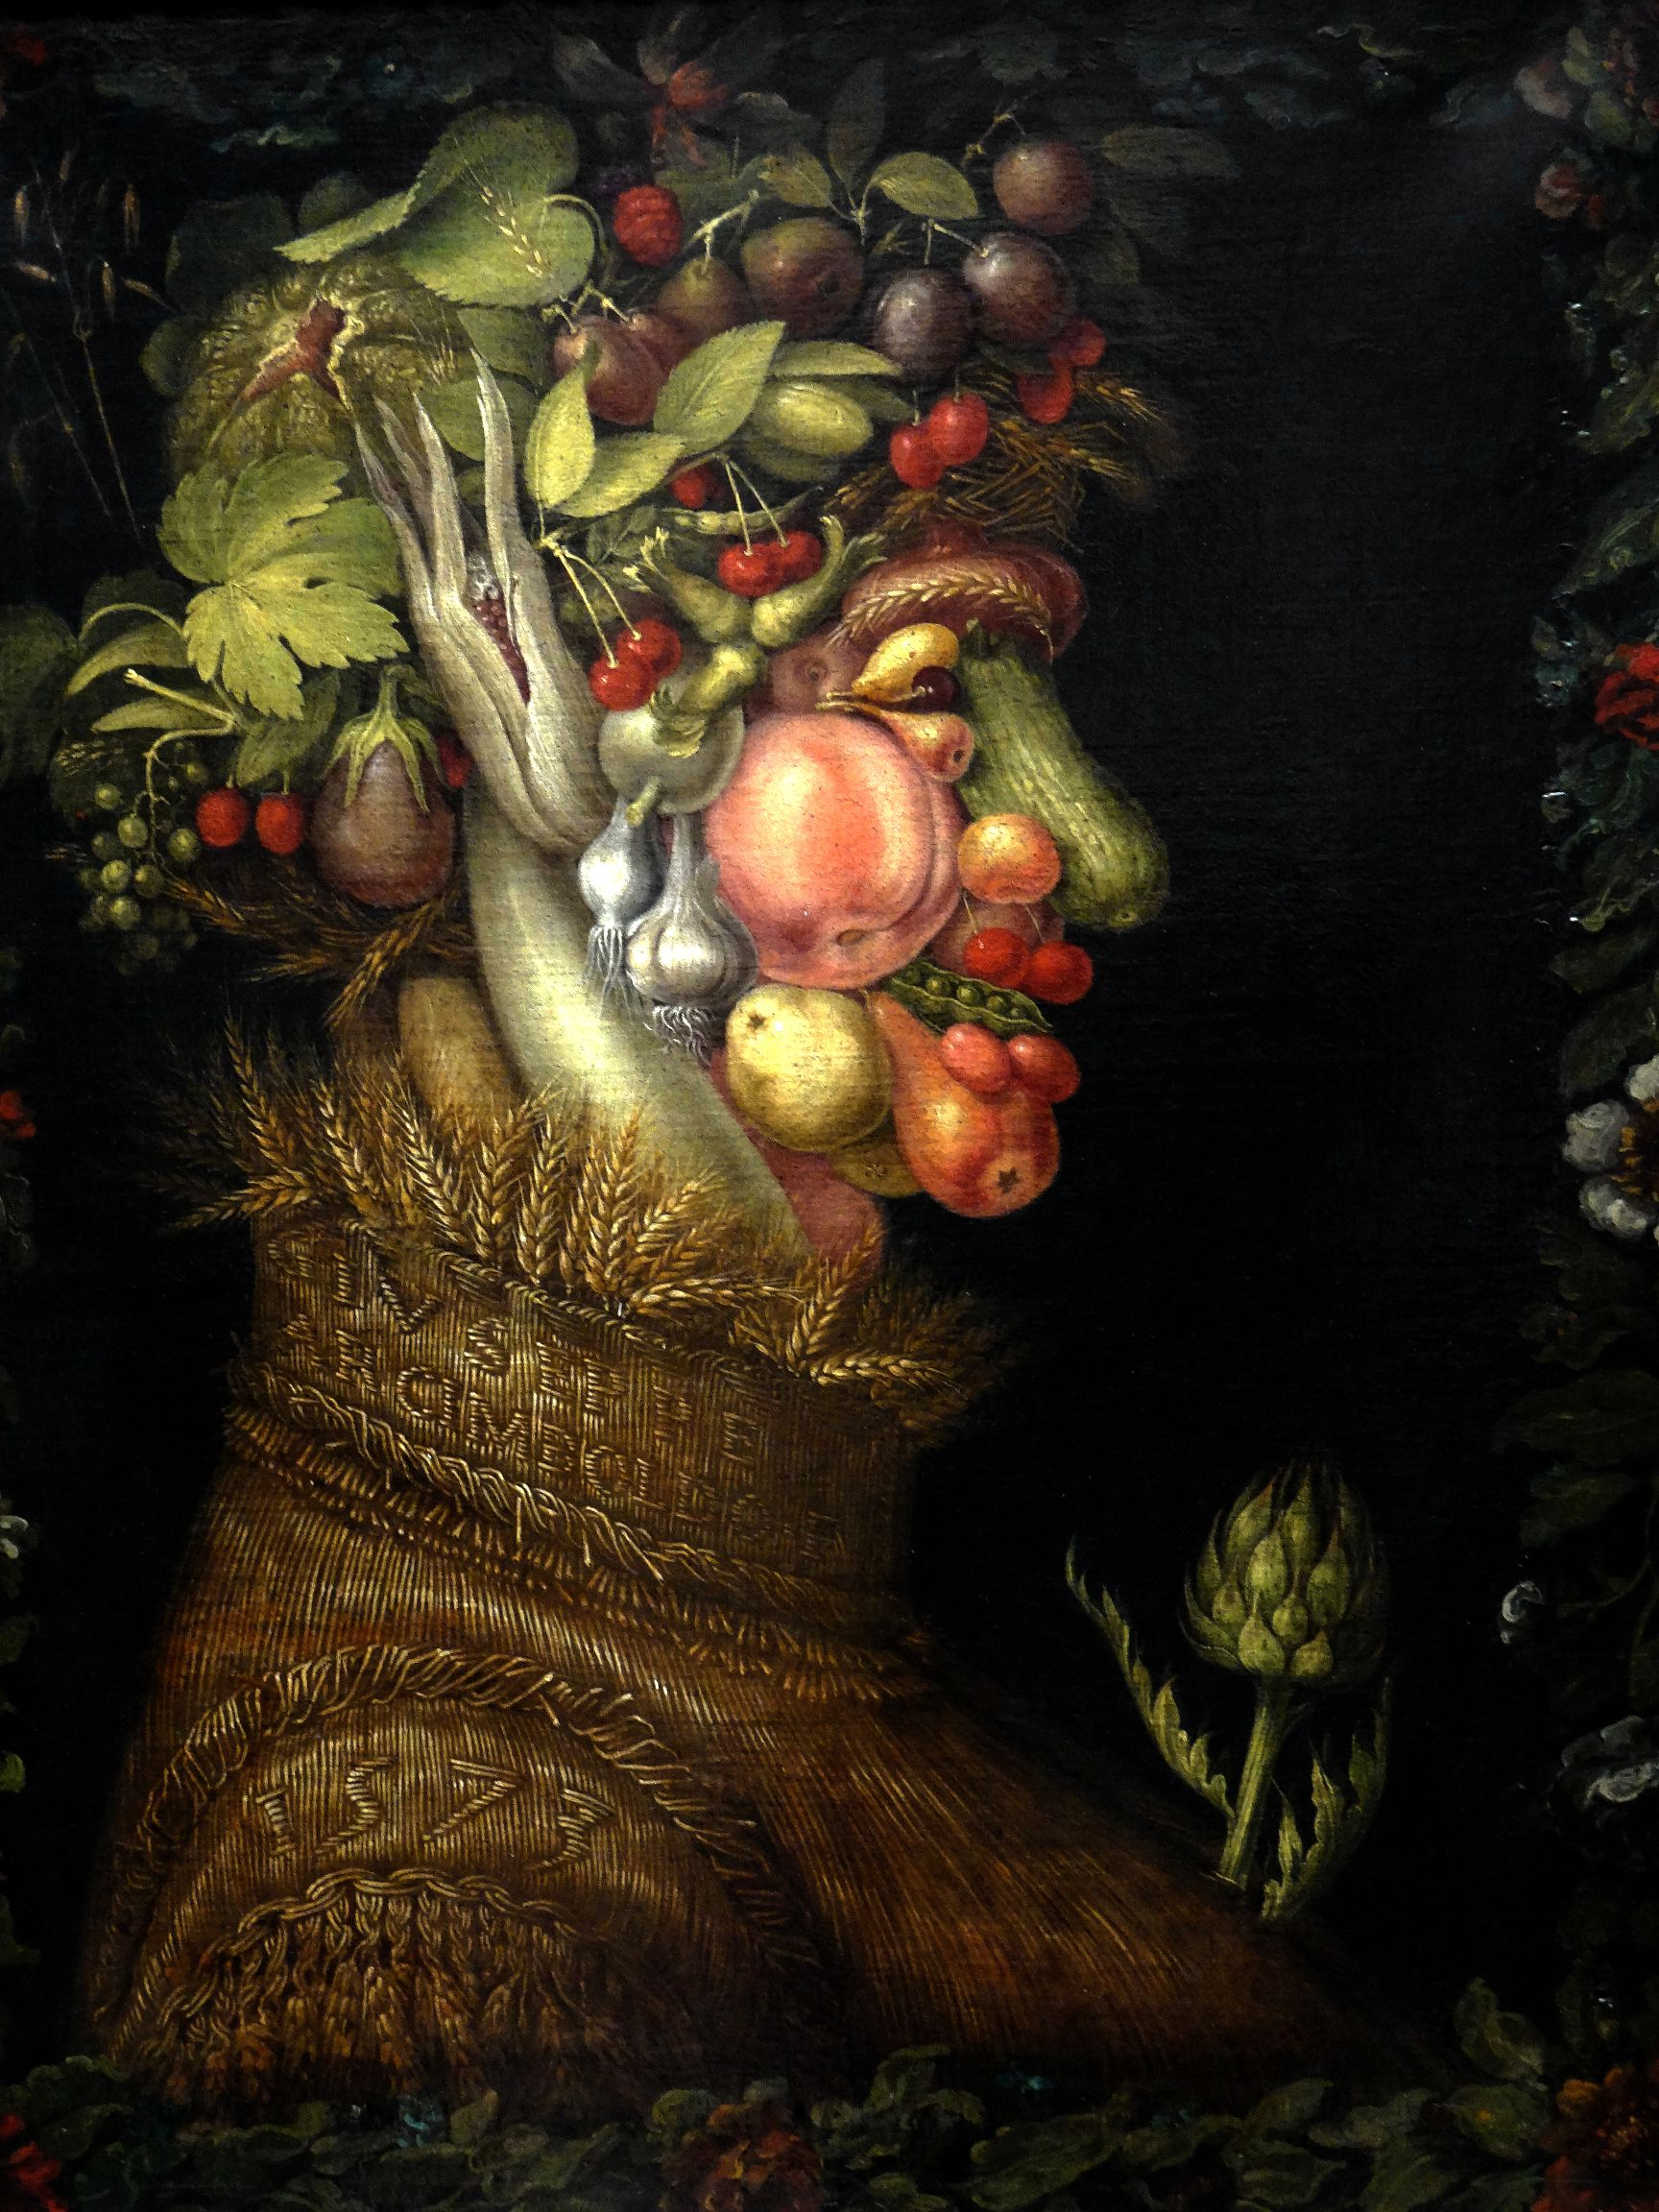 http://upload.wikimedia.org/wikipedia/commons/2/28/Arcimboldo_Verano.jpg